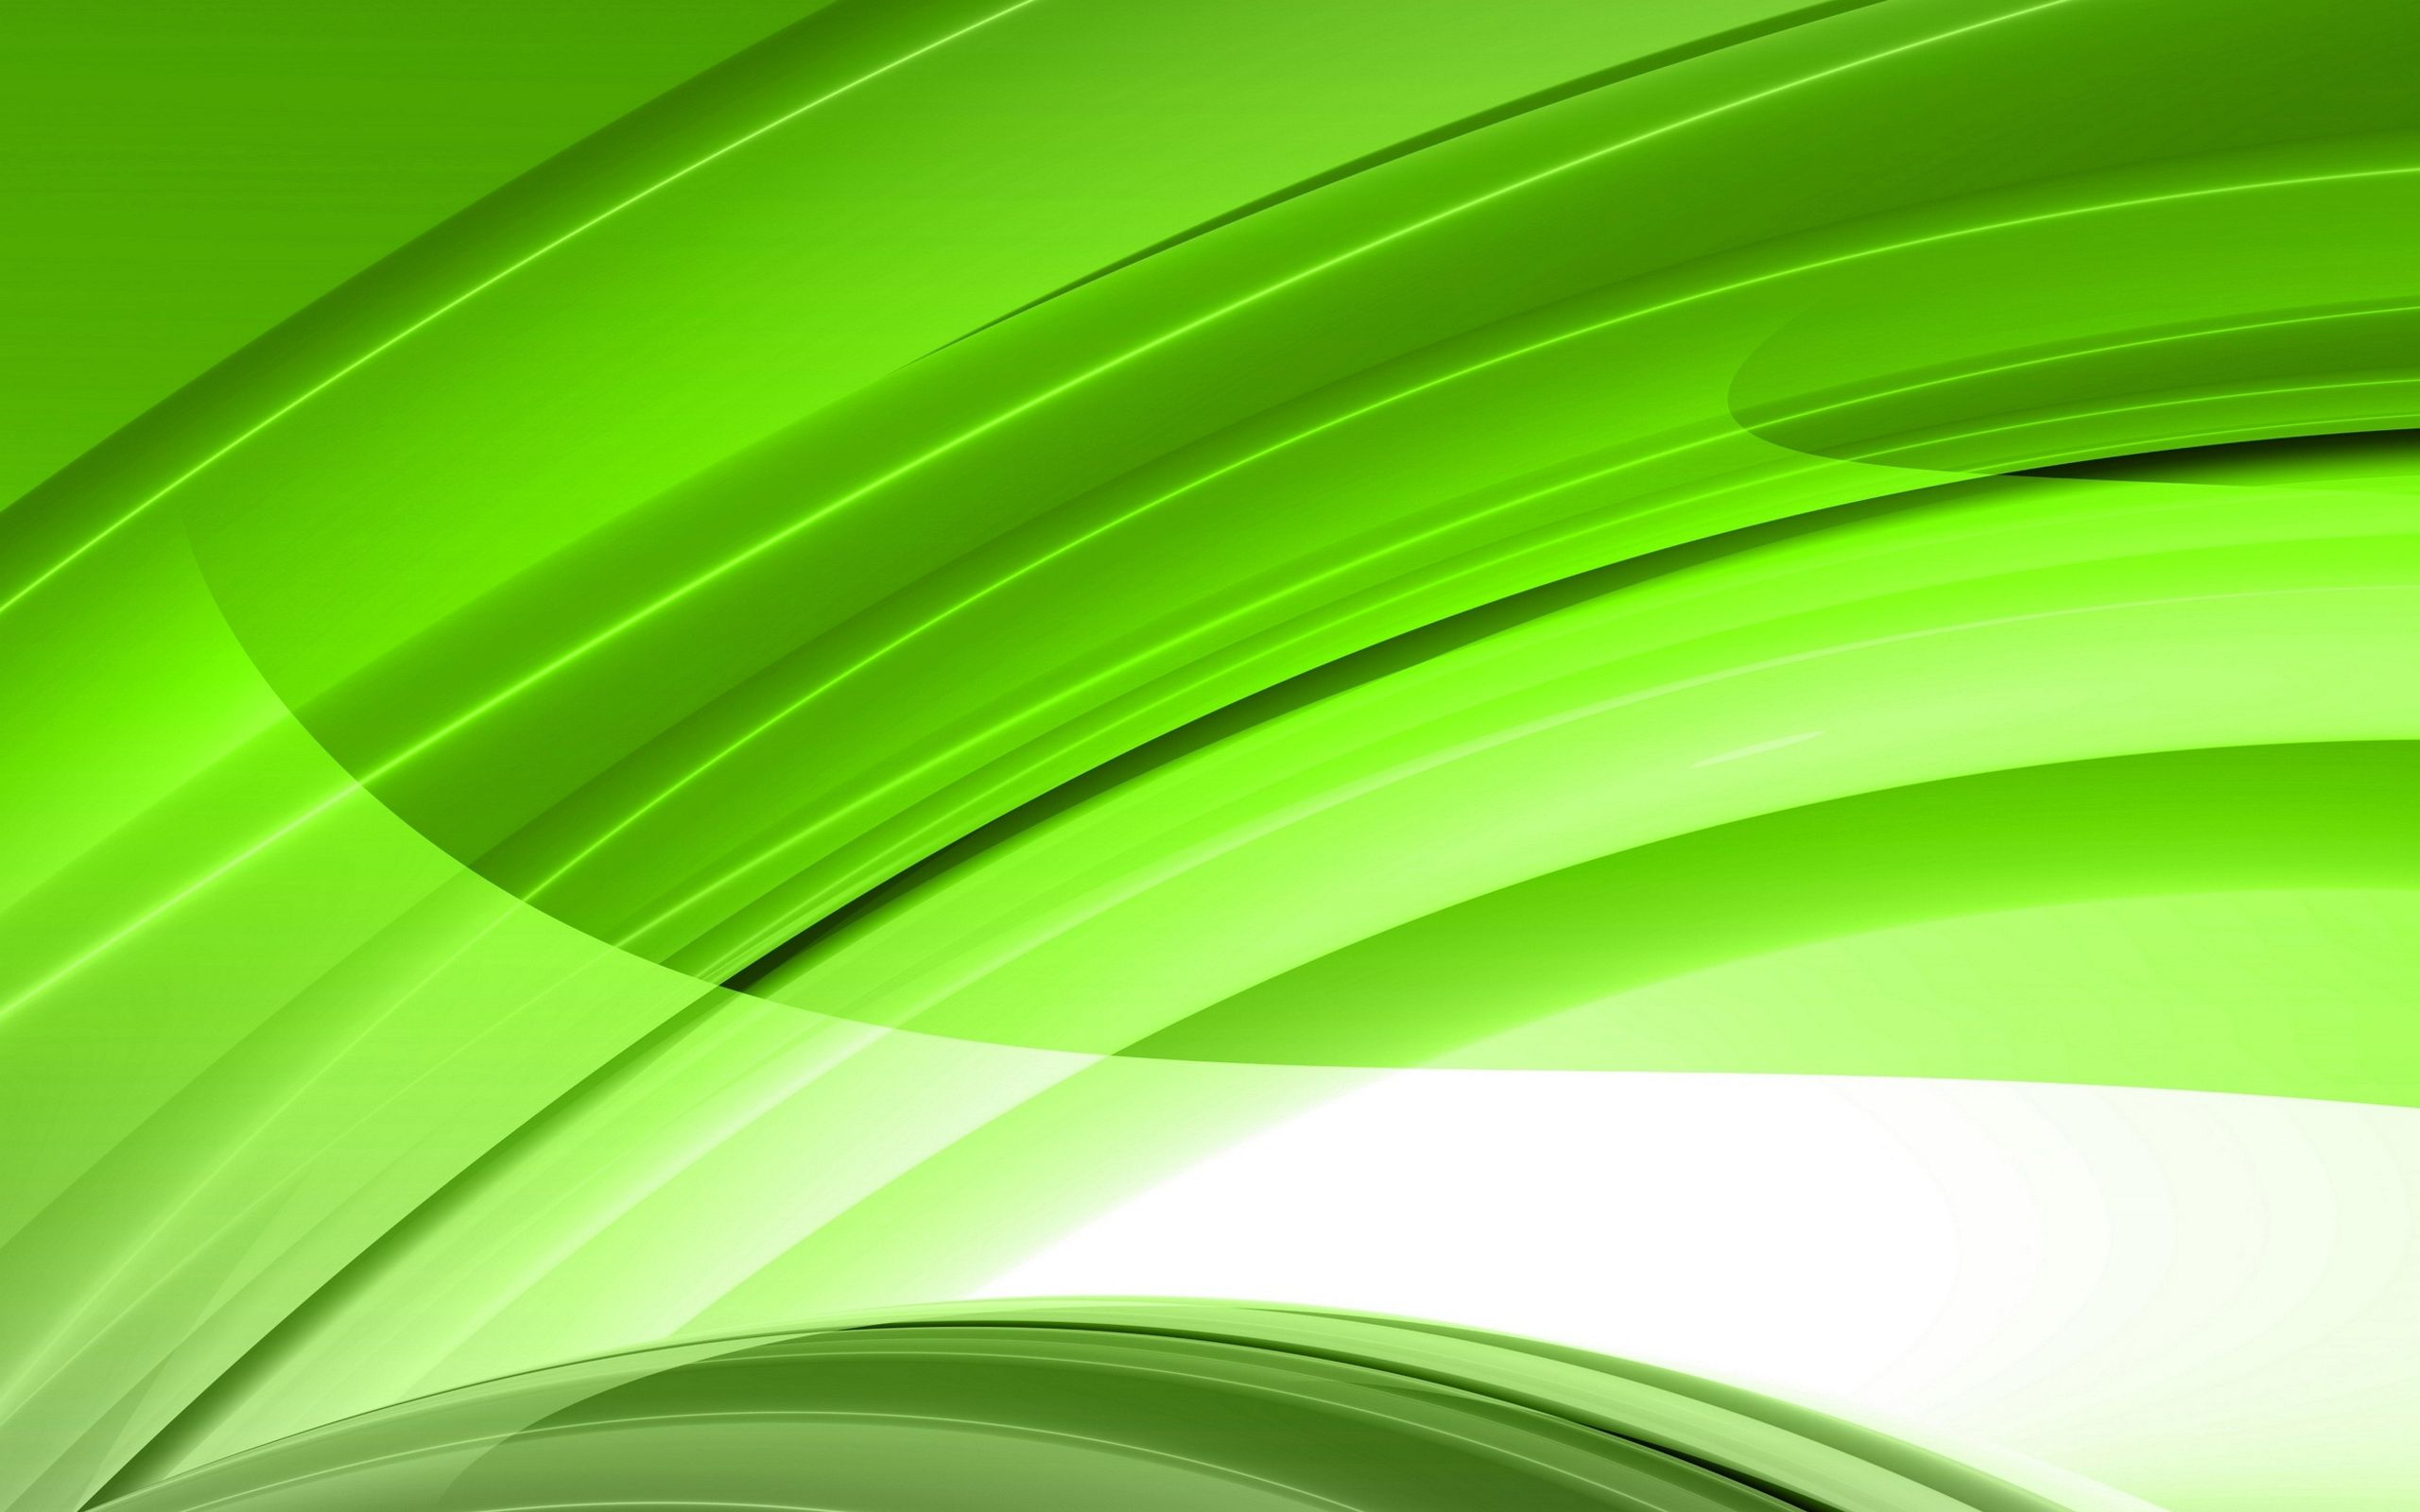 2560x1600 Top 10 Punto Medio Noticias | Green Wallpaper Hd